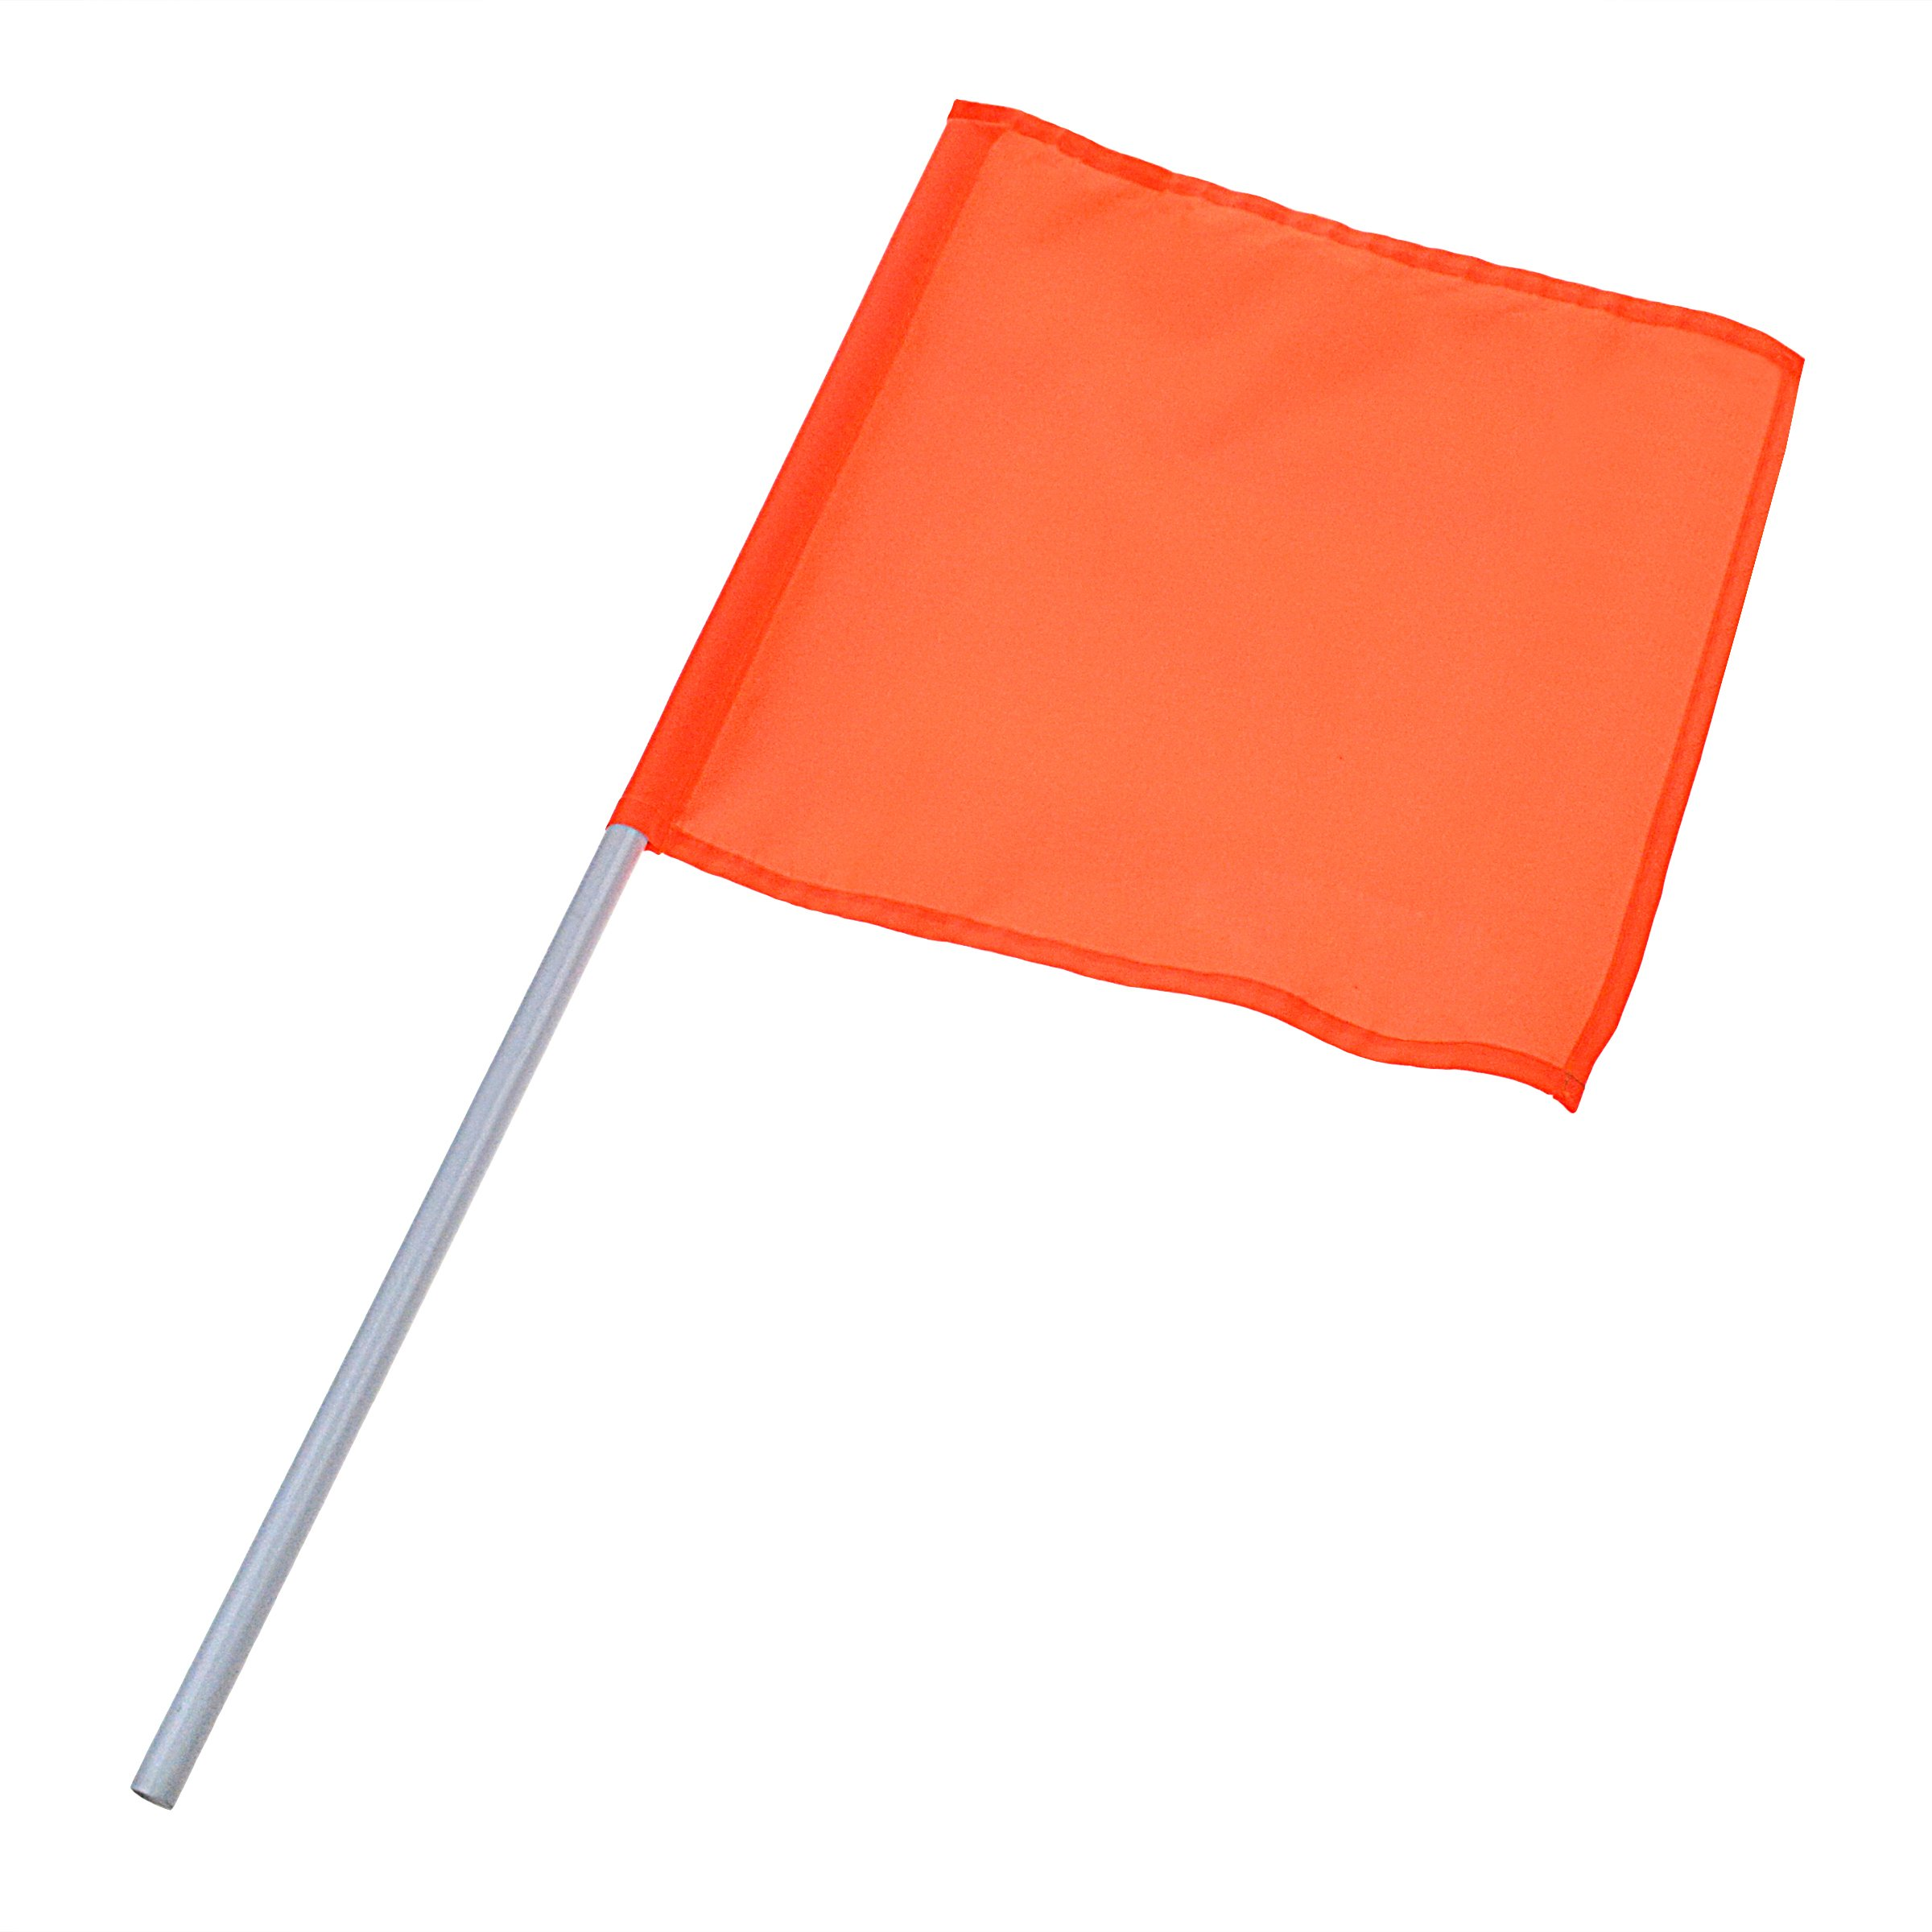 Shoreline Marine Skier Down Flag No Suction Cup by Shoreline Marine